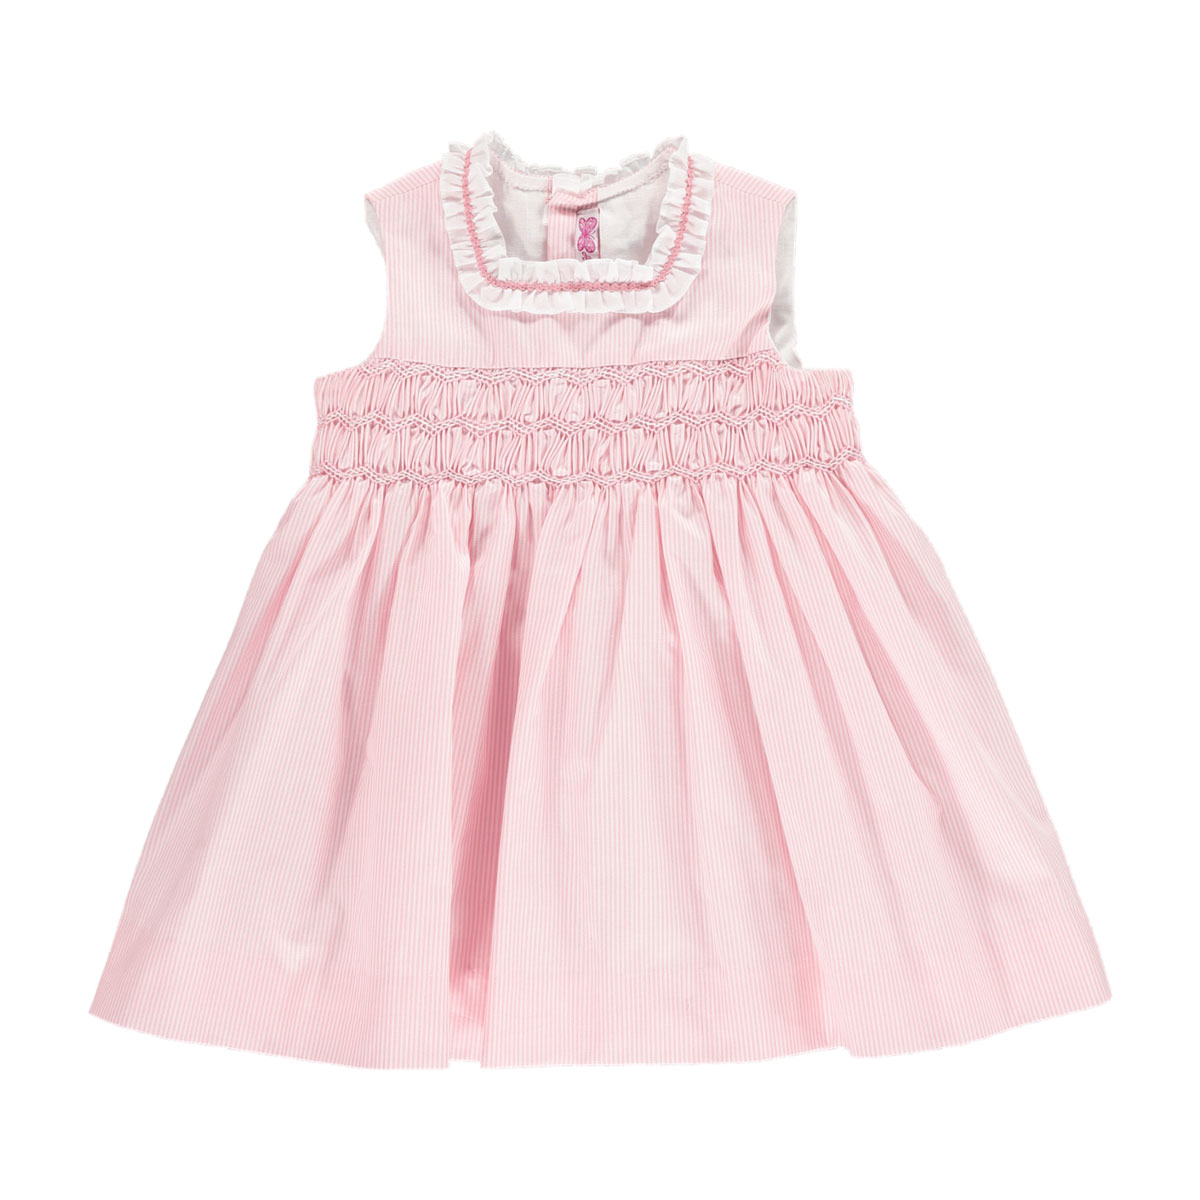 Amaia Sleeveless Eugenie Dress in Pink